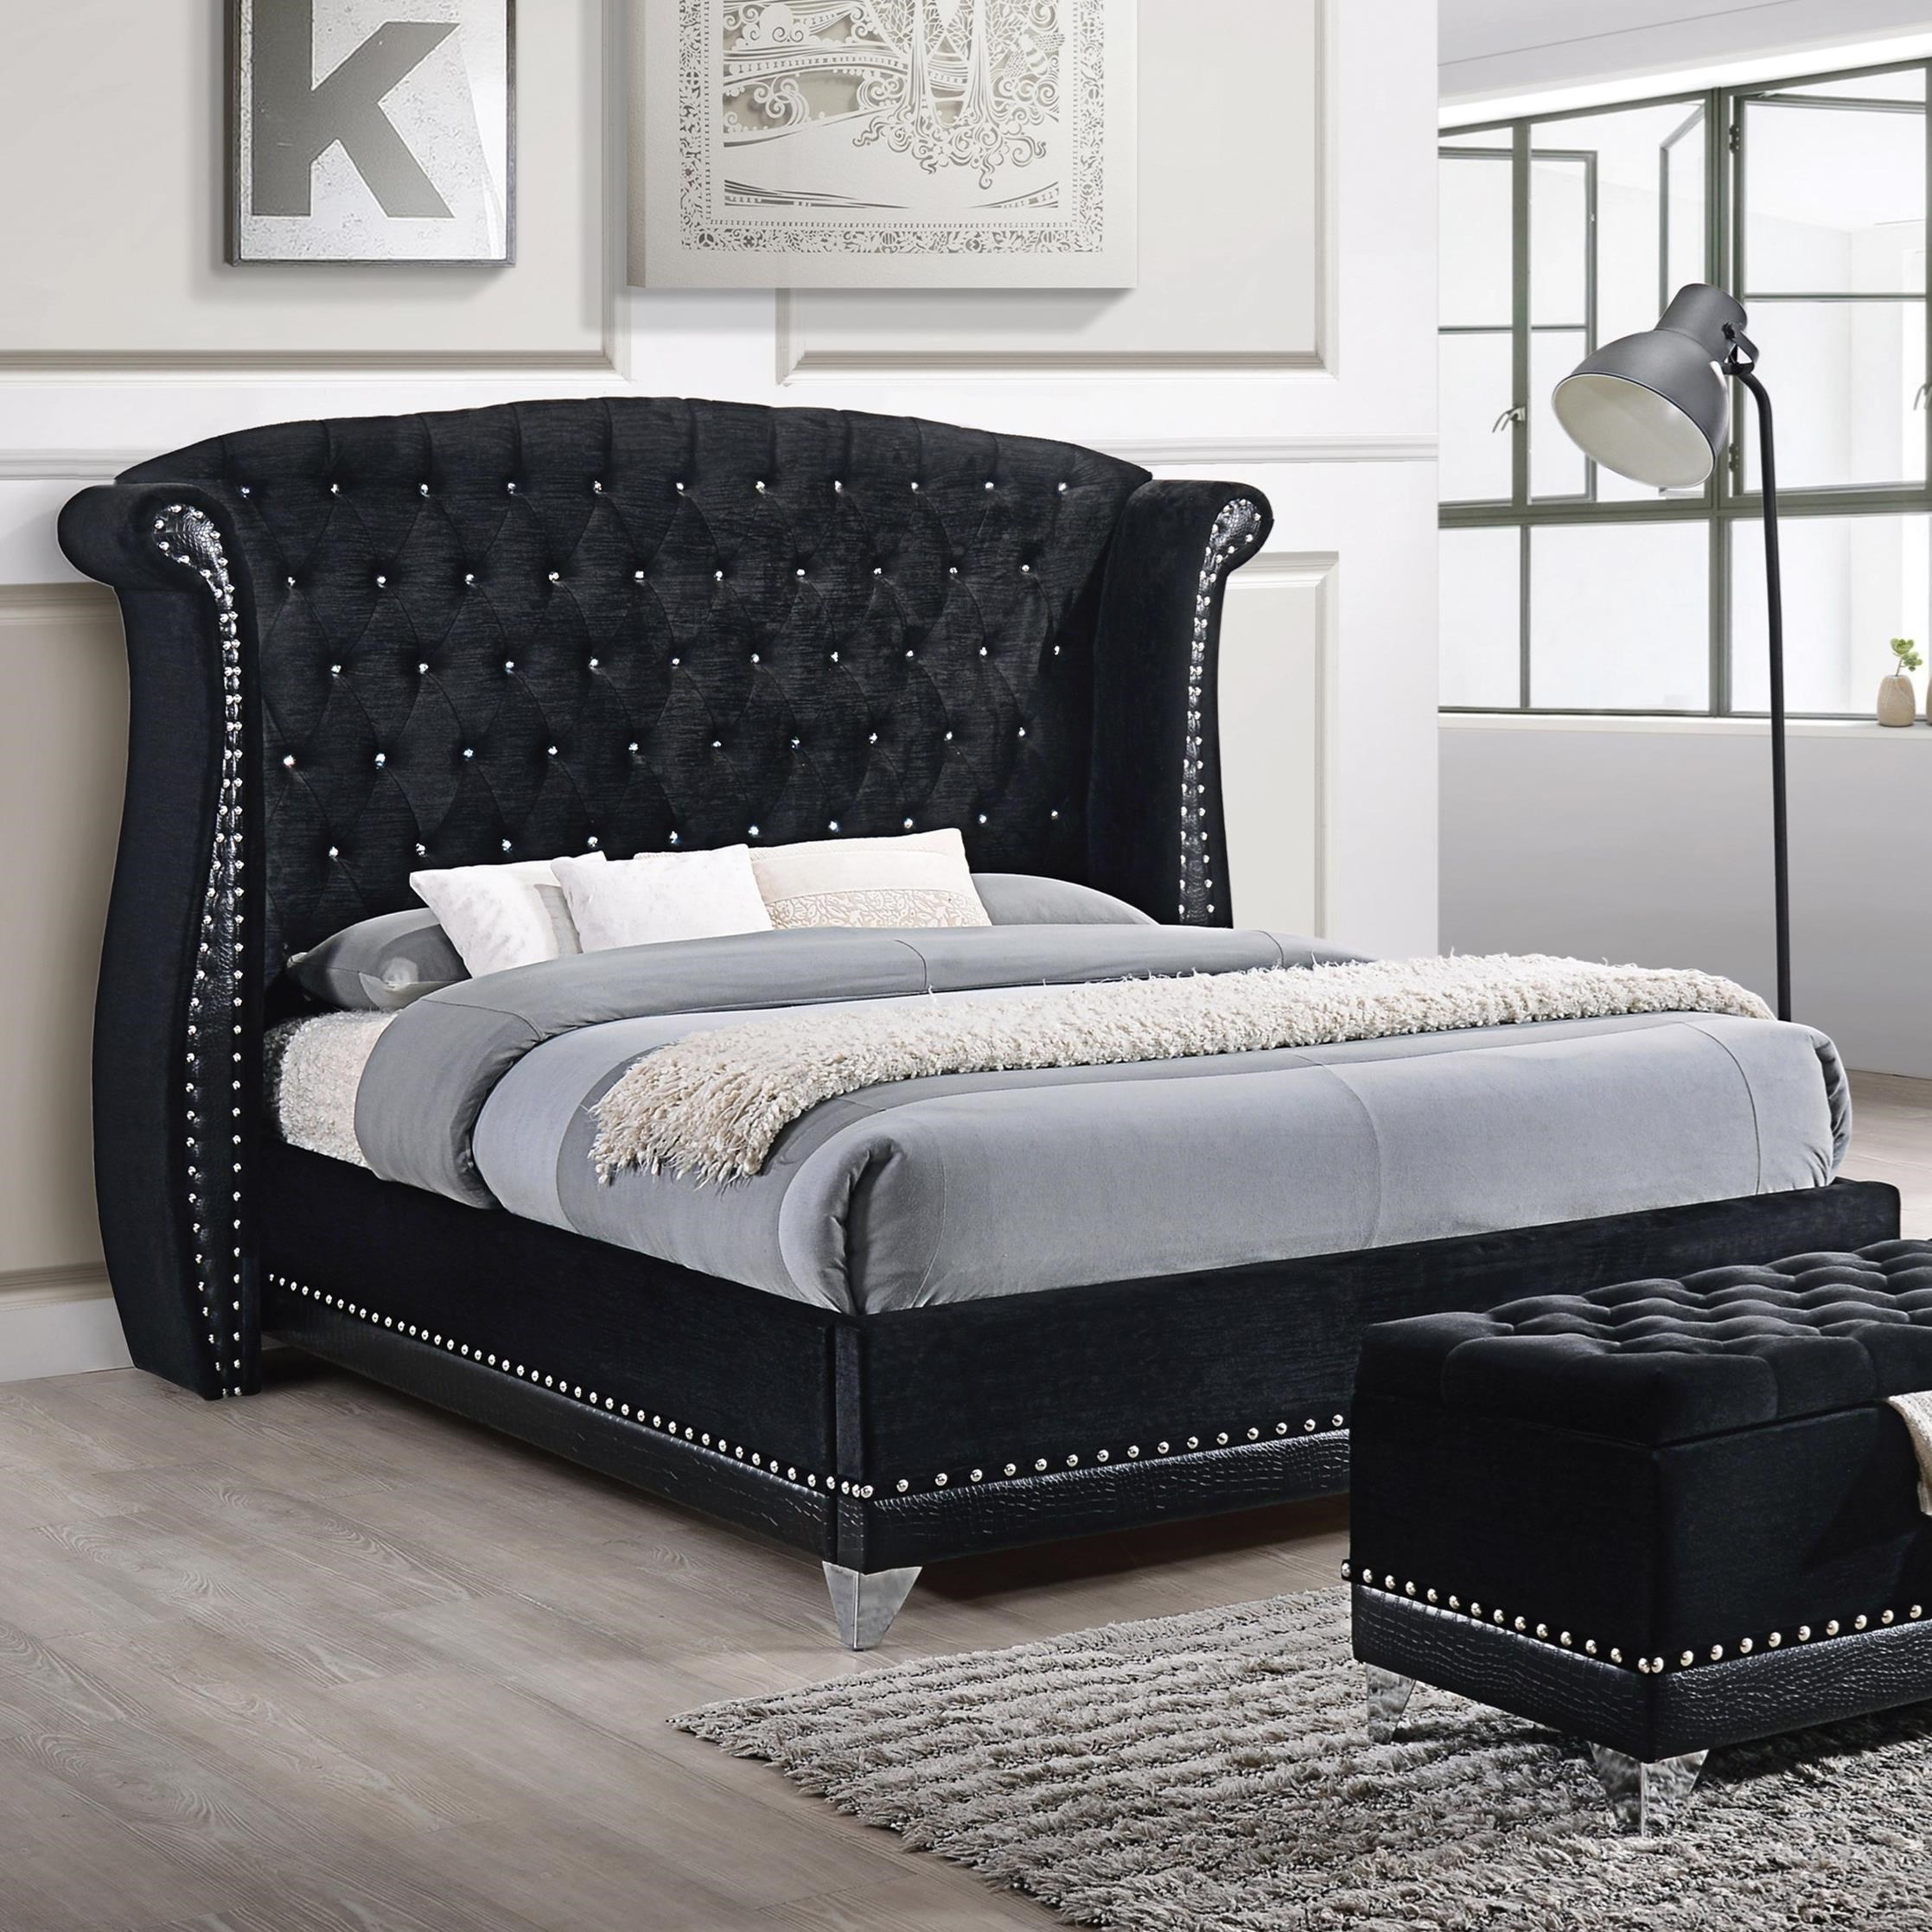 Coaster Barzini Glamorous Upholstered Queen Bed